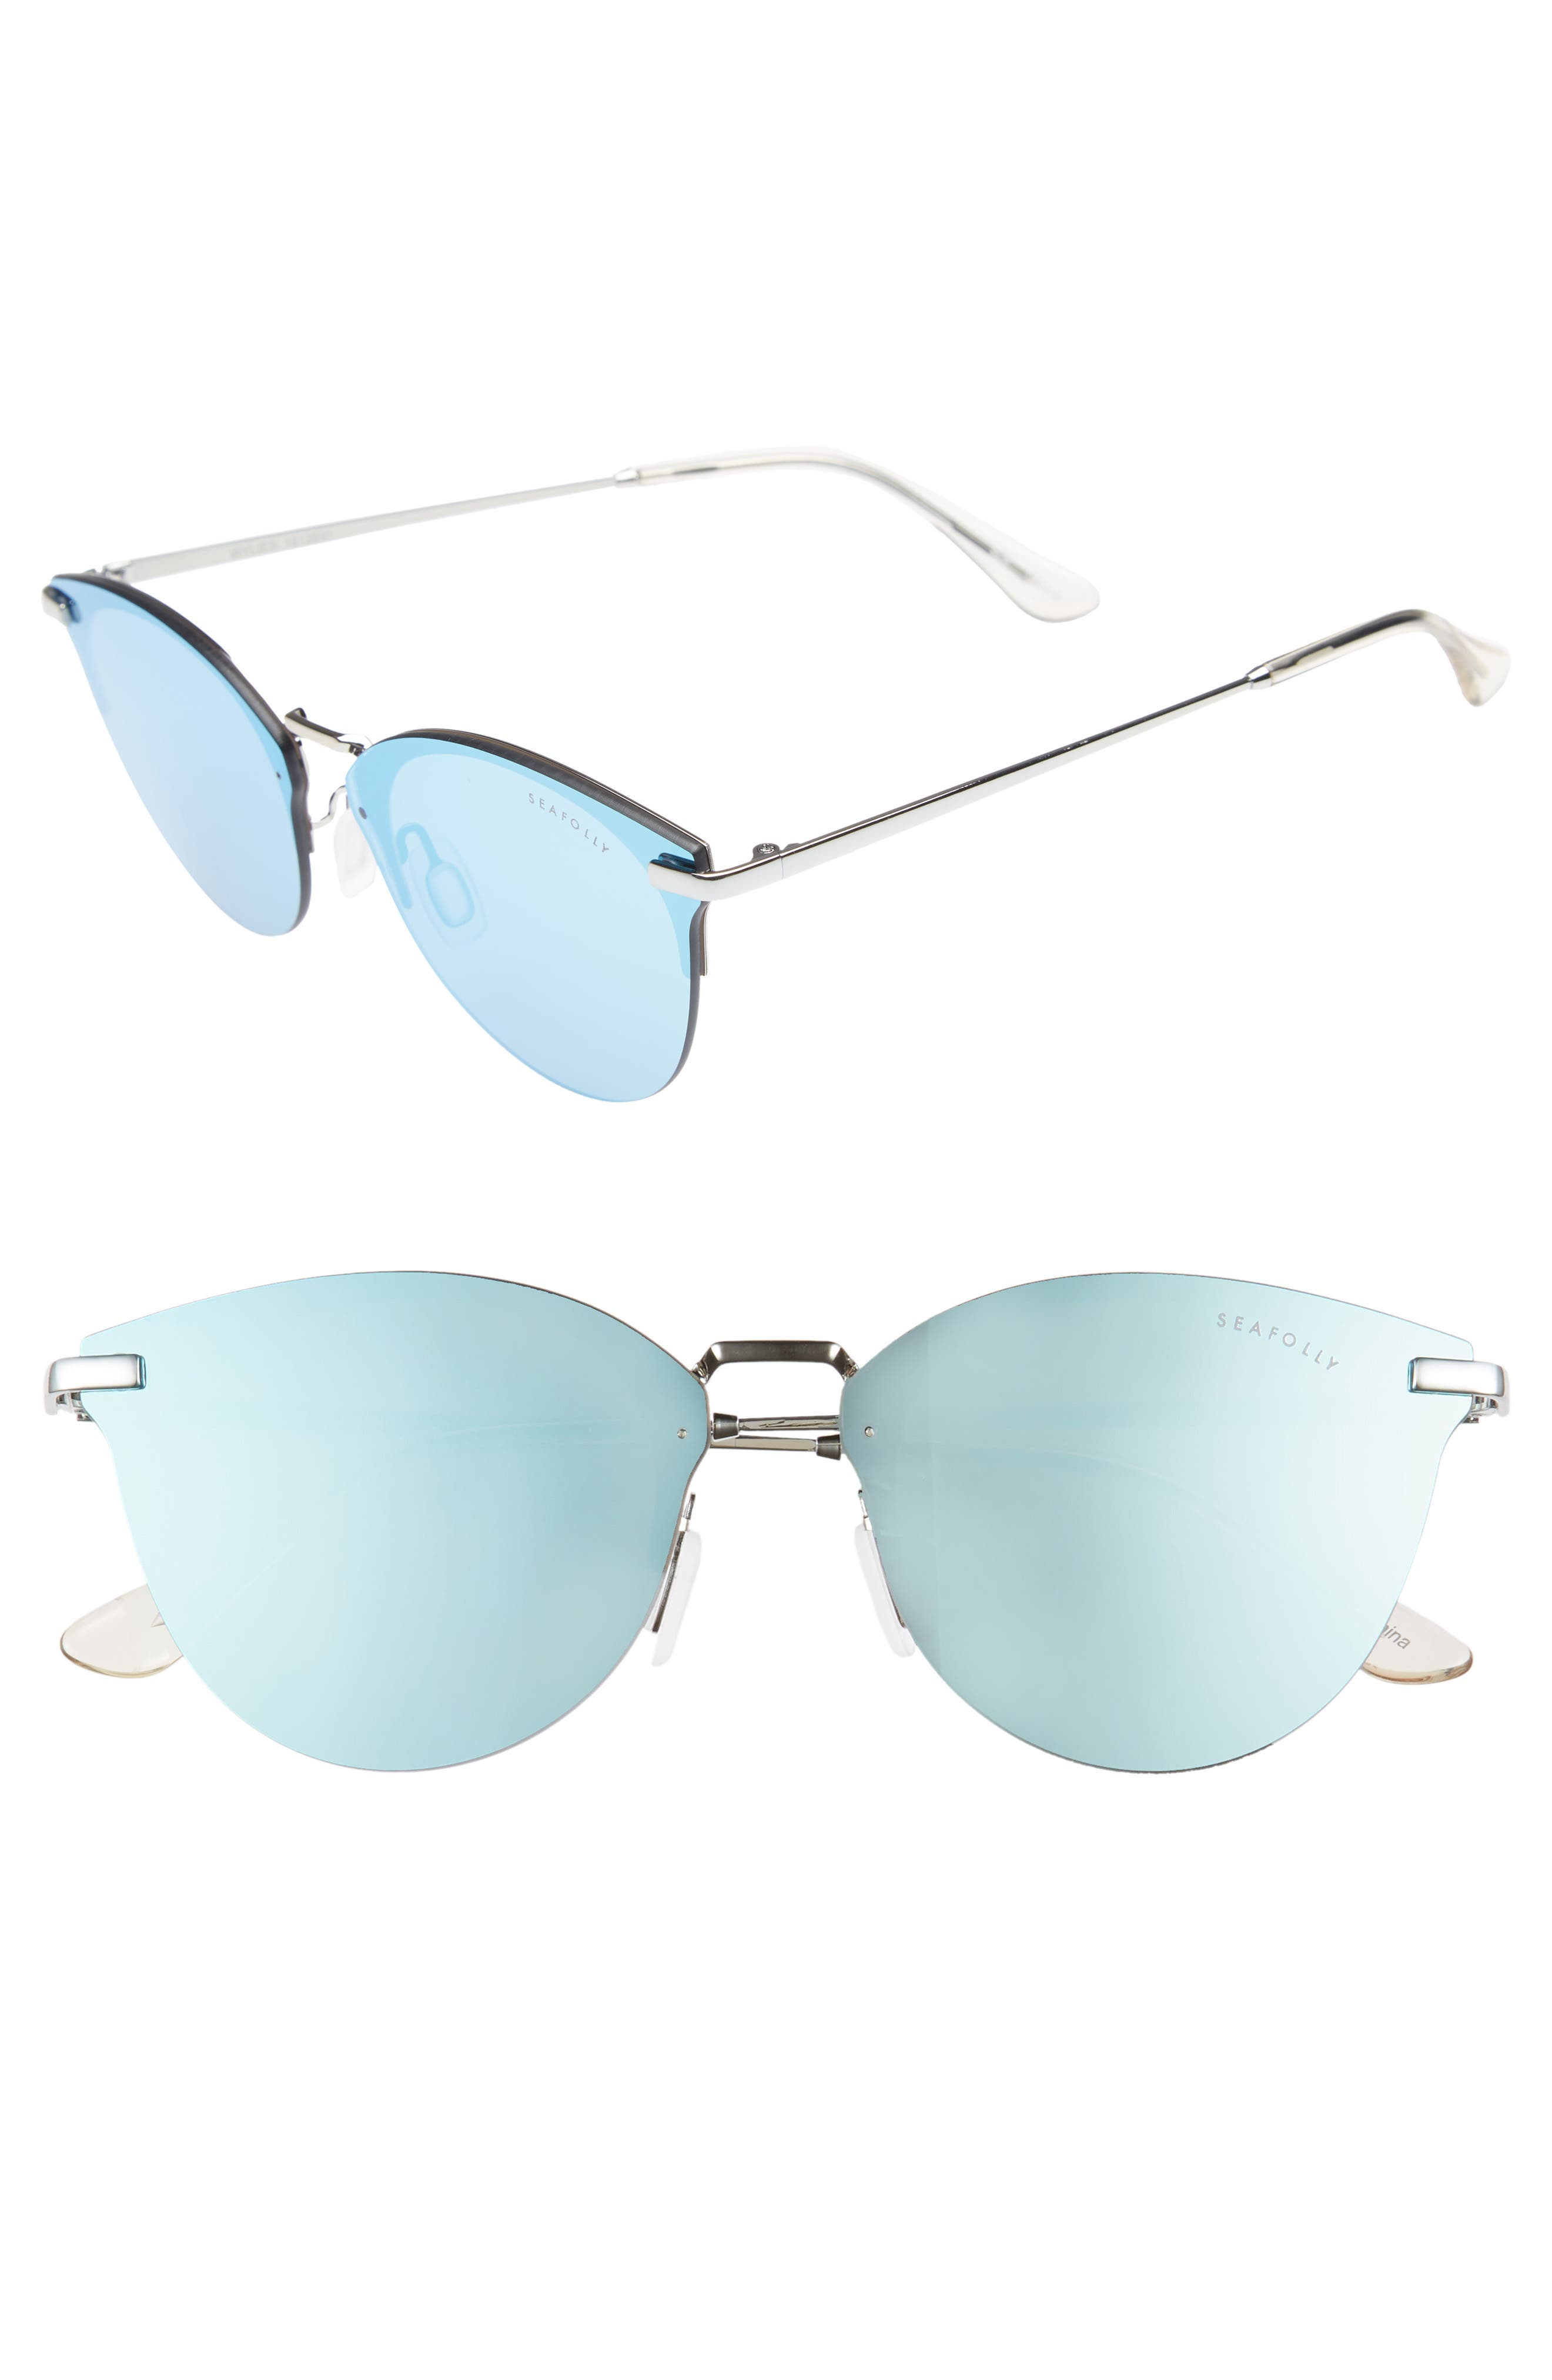 Wylies 50mm Rimless Sunglasses,                         Main,                         color, 400